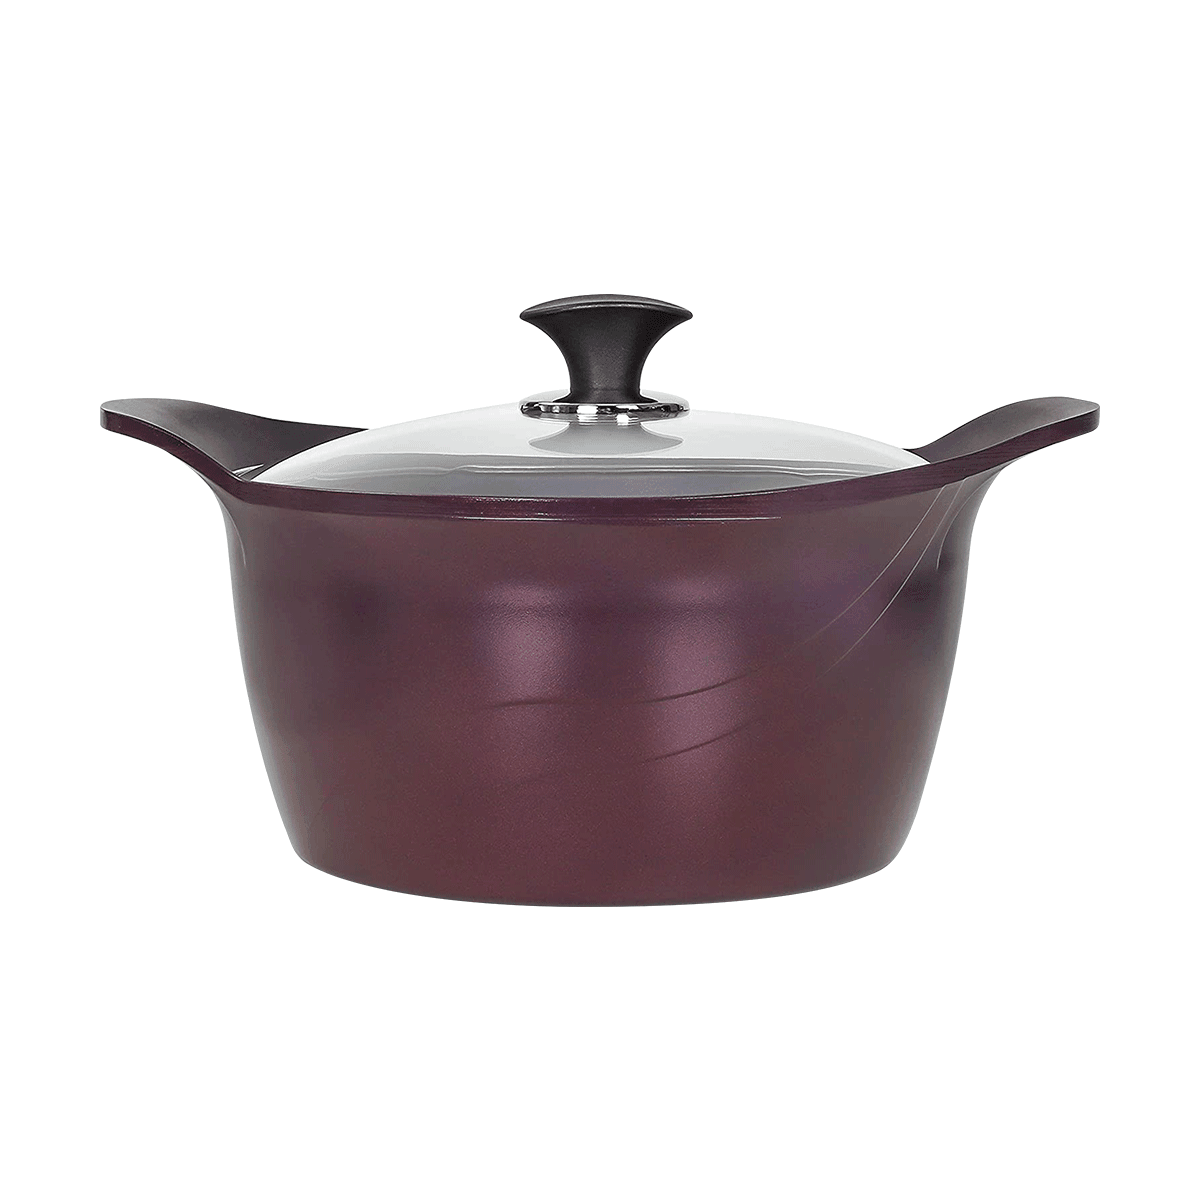 Yamibuy.com:Customer reviews:PurpleChef  7 Quart Nonstick Stock Pot with Lid - INDUCTION COMPATIBLE